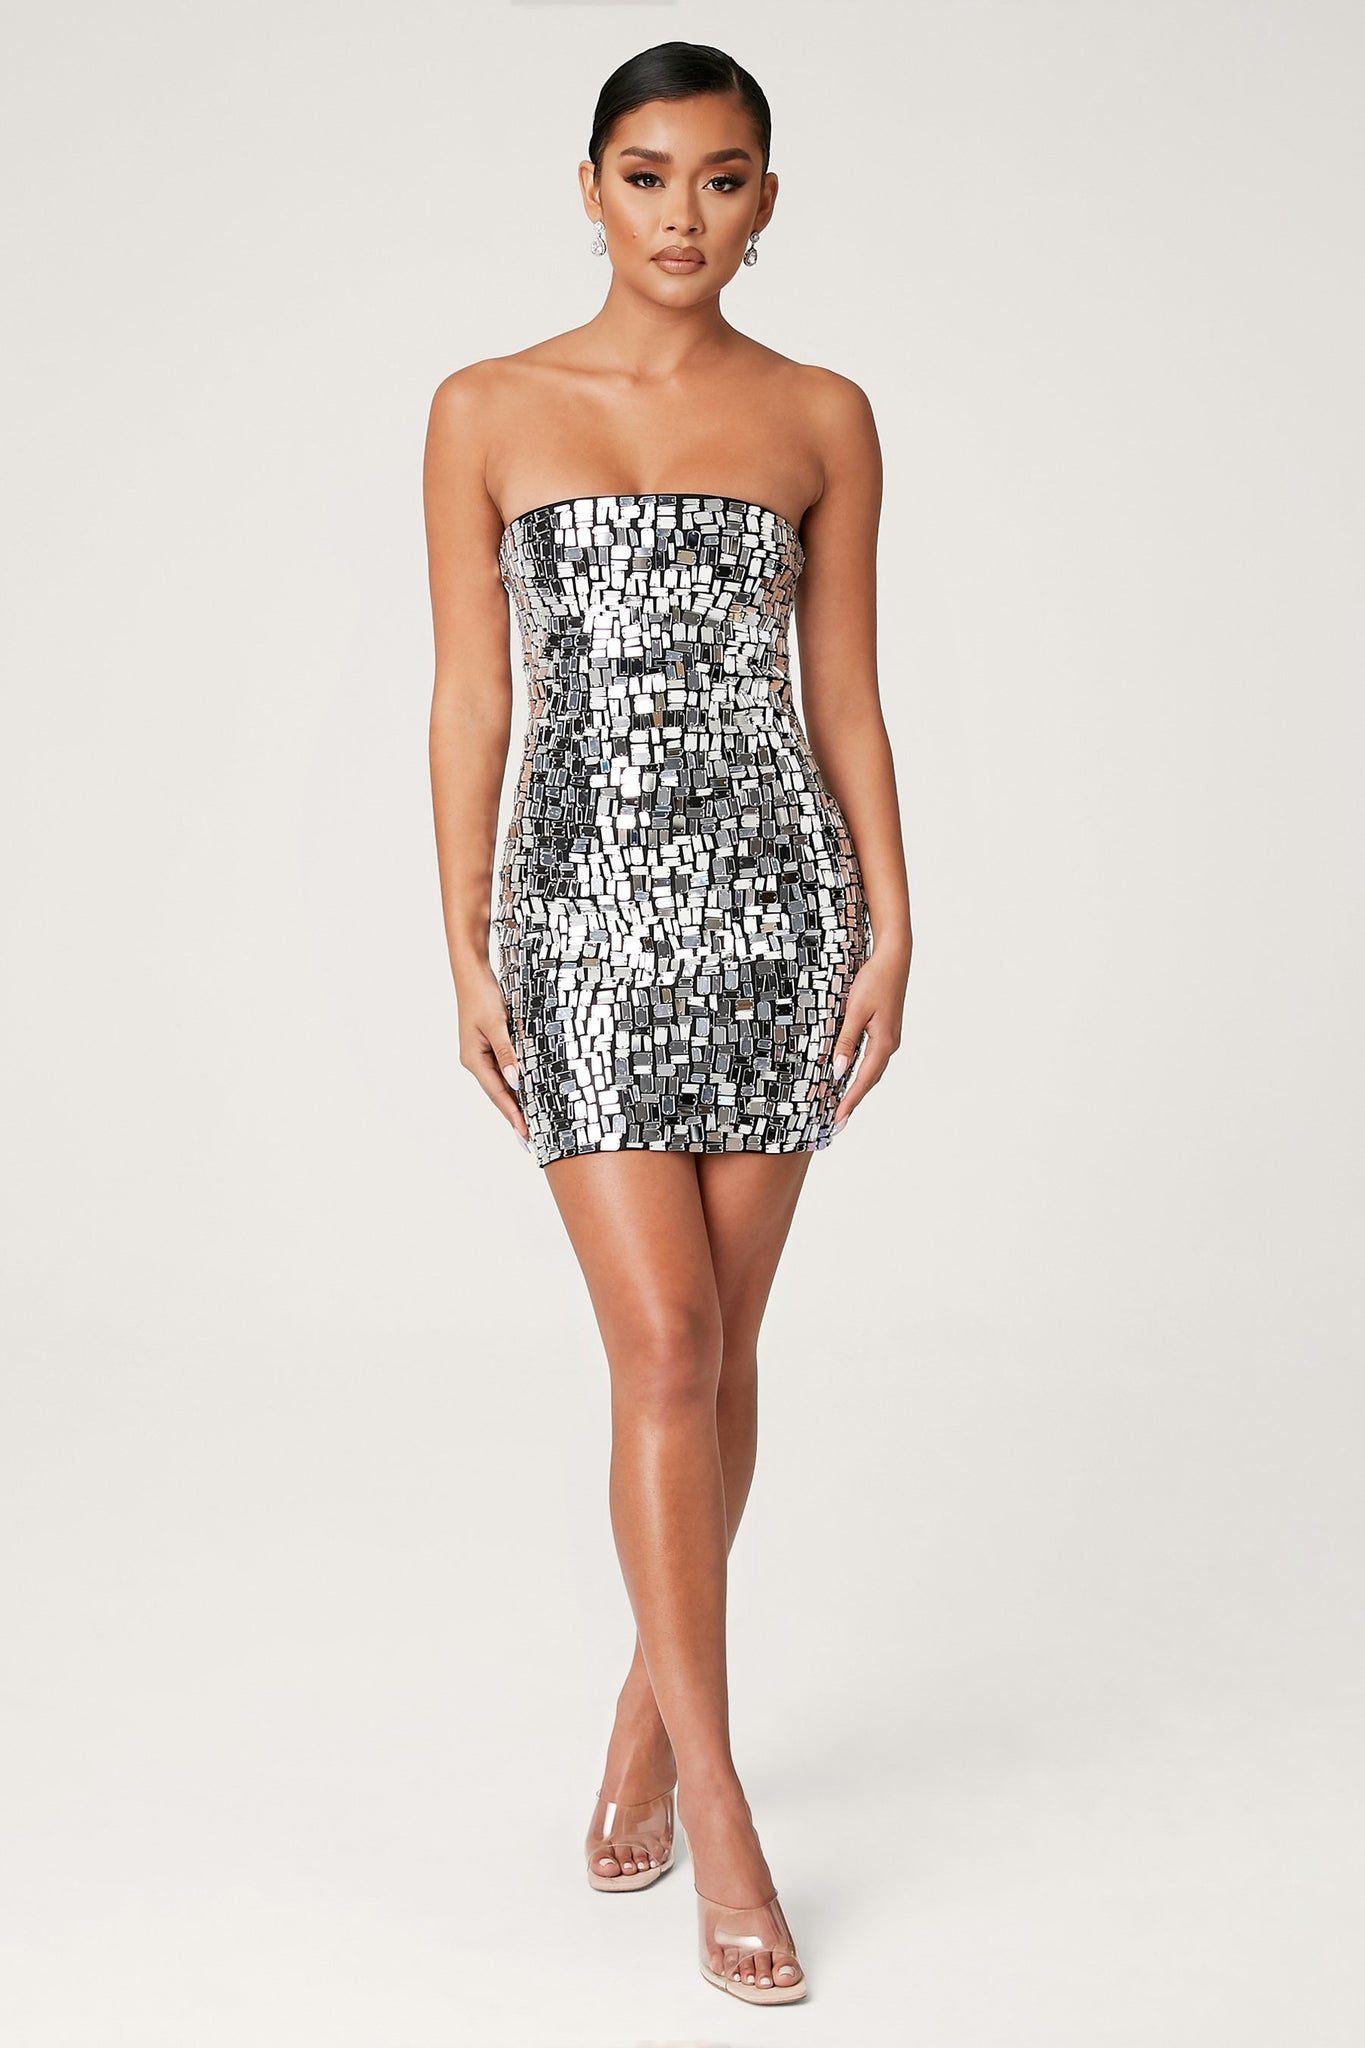 Bijou Jewel Mirror Mini Dress - Silver - MESHKI